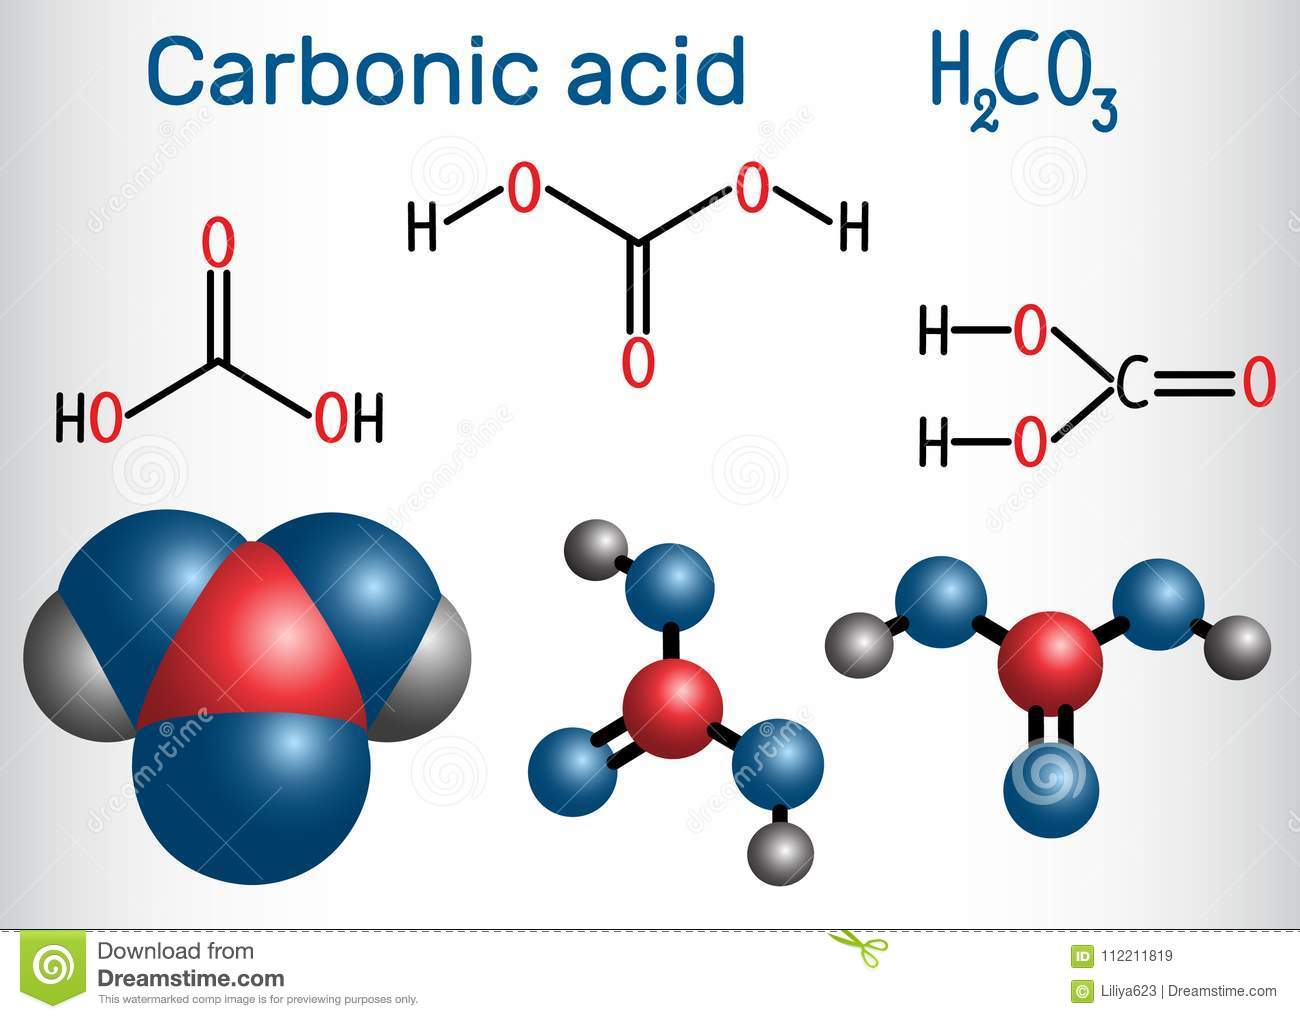 filename:  carbonic-acid-h-co-molecule-also-solution-carbon-dioxide-water-carbonated-water-structural-chemical-formula-112211819 jpg